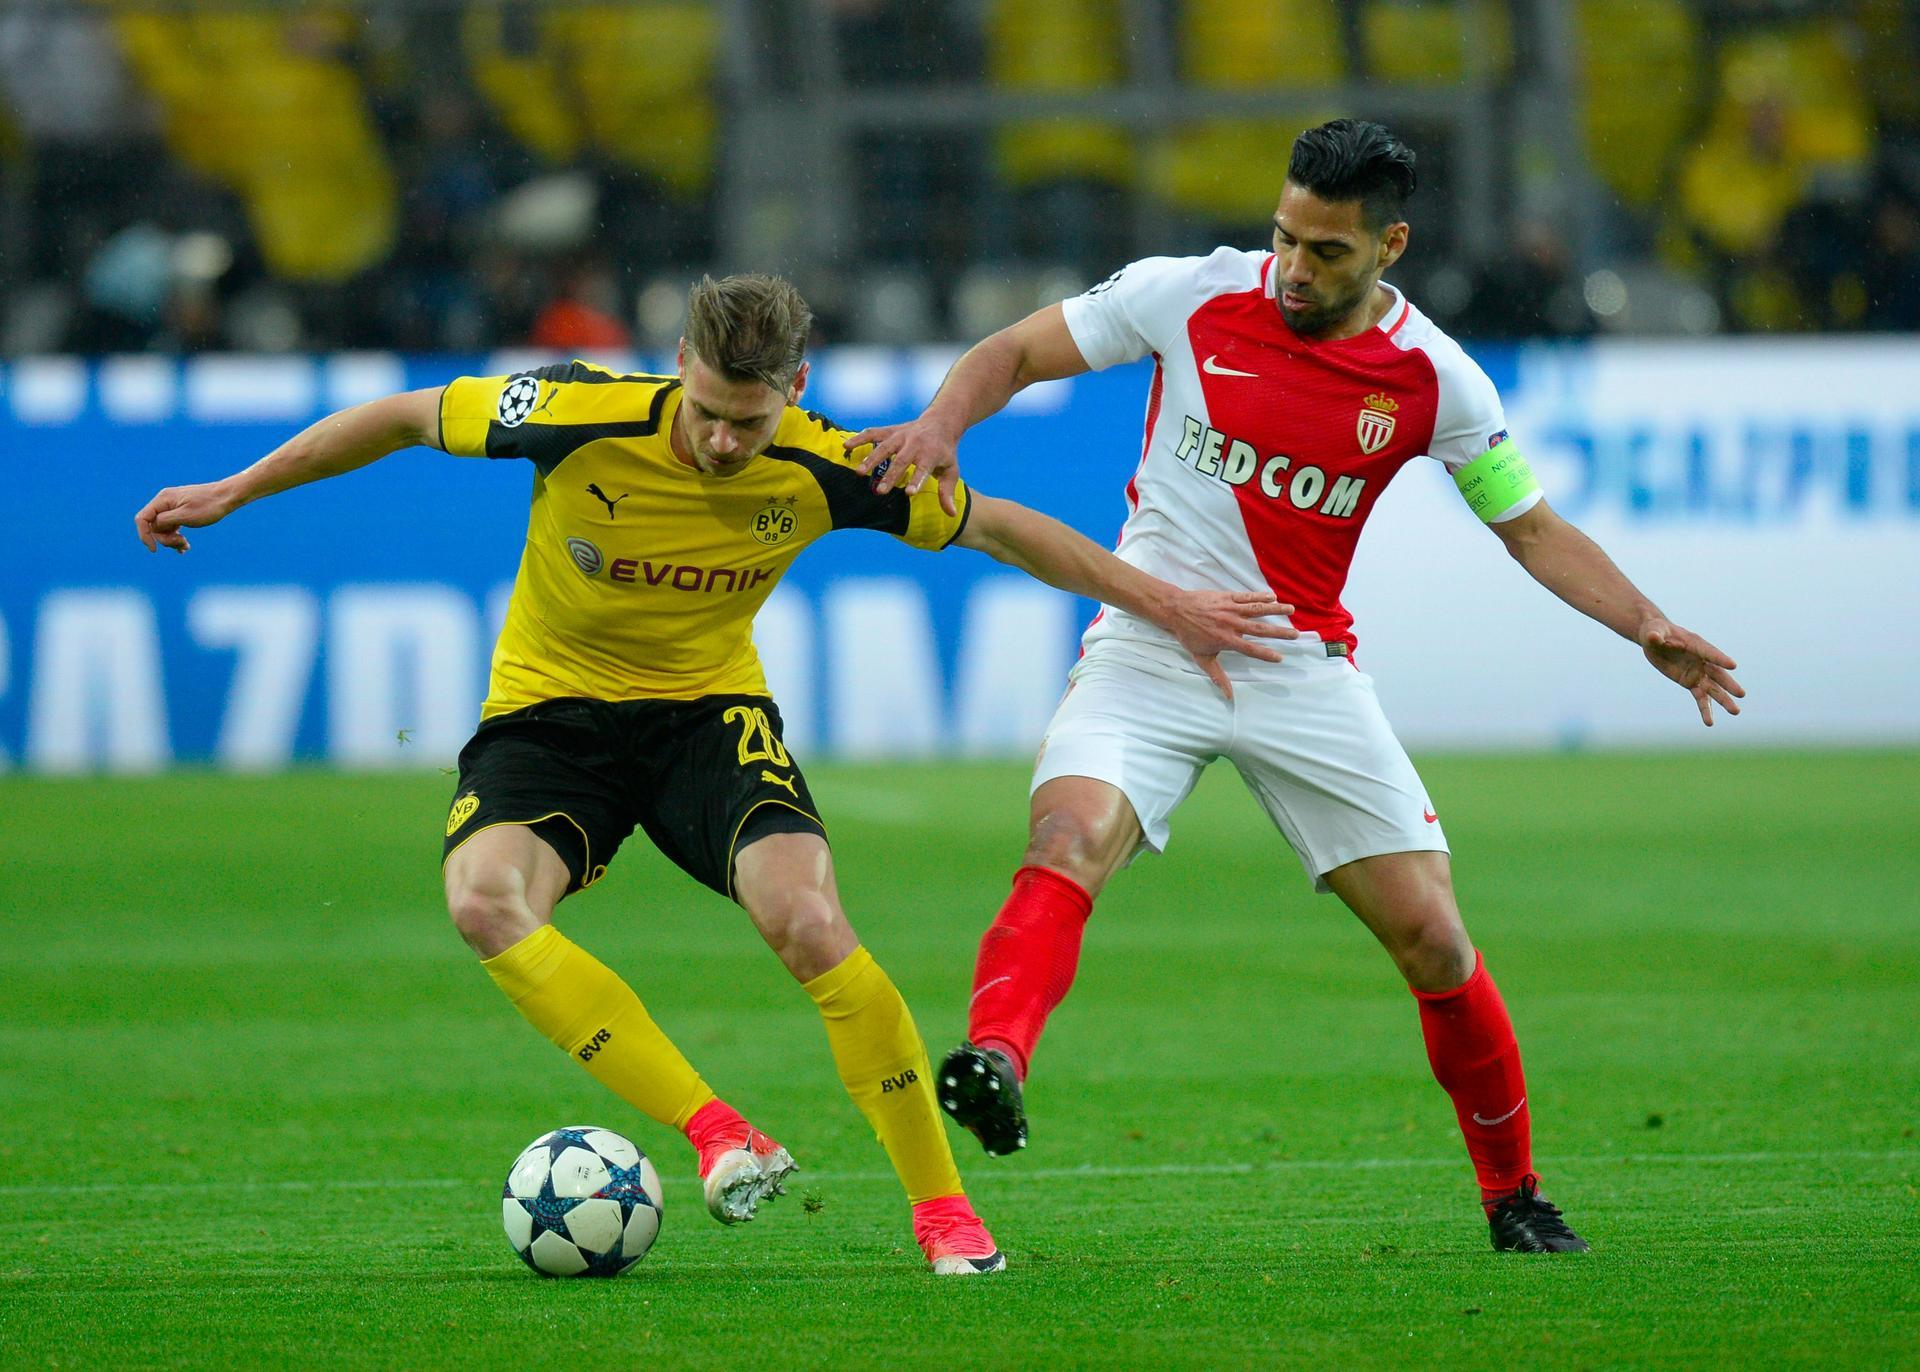 Monaco offers Dortmund a gift as a show of solidarity